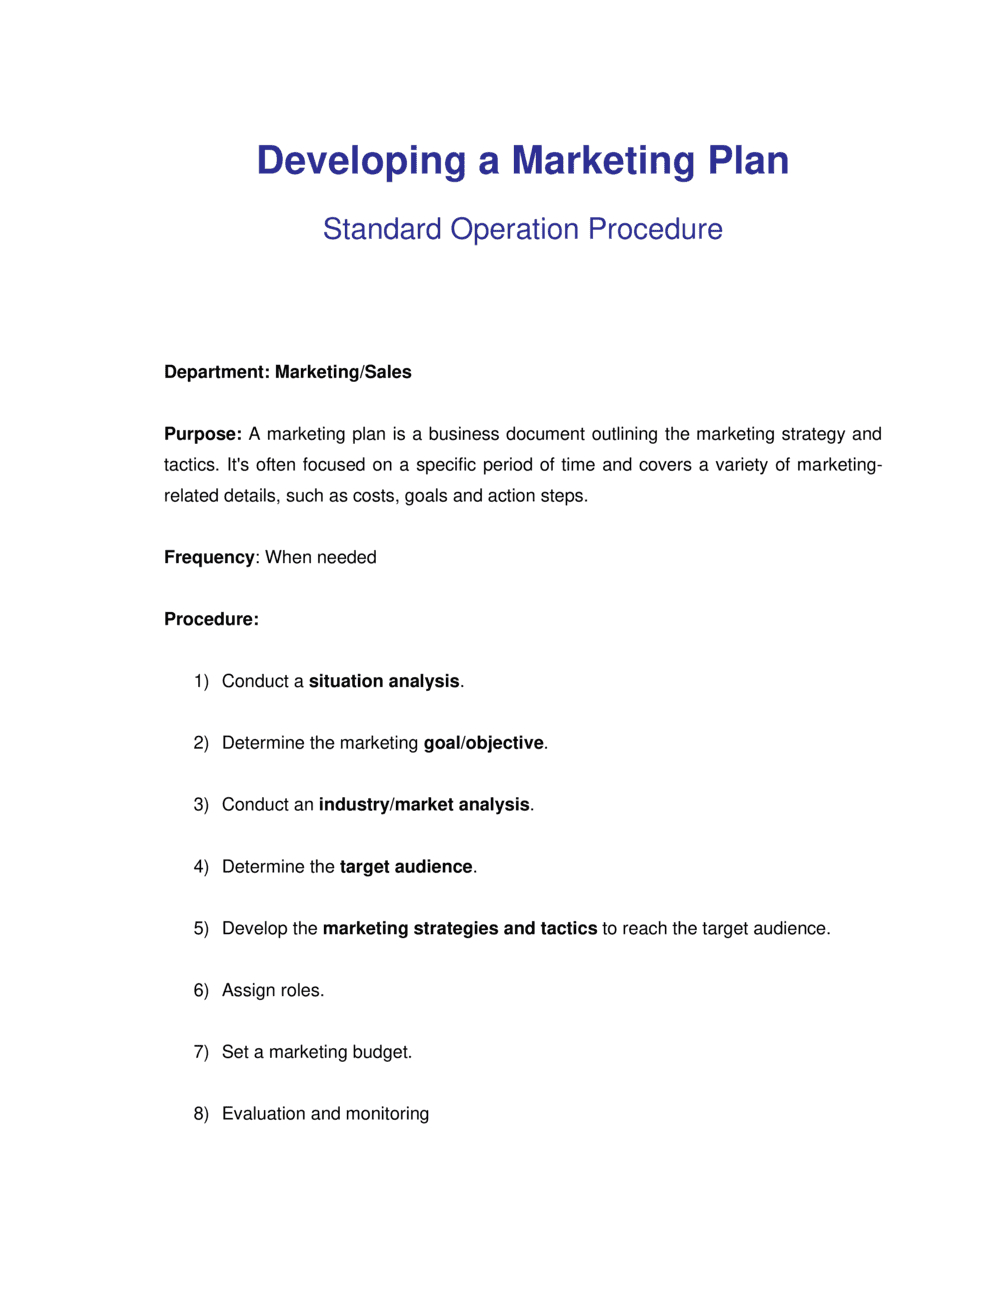 Business-in-a-Box's How to Develop a Marketing Plan Template